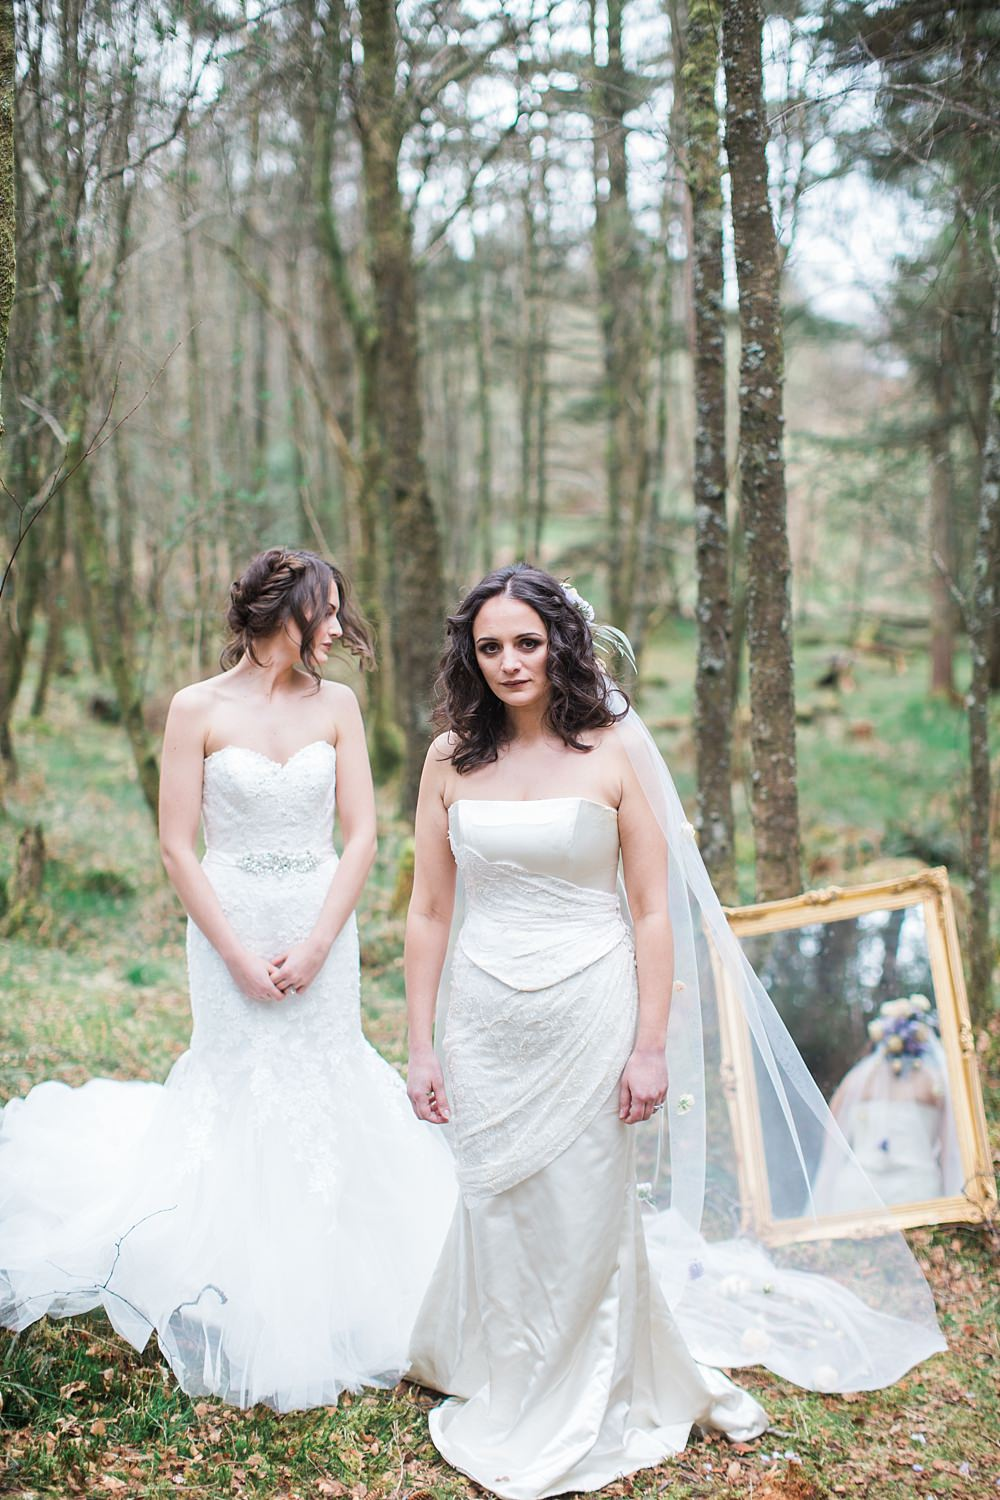 Ginger and Lime events,Laura Gray Hair Beauty Bridal,The Gibsons,brides,rock the dress shoot,sisters,styled shoot,wedding shoot loch lomond,